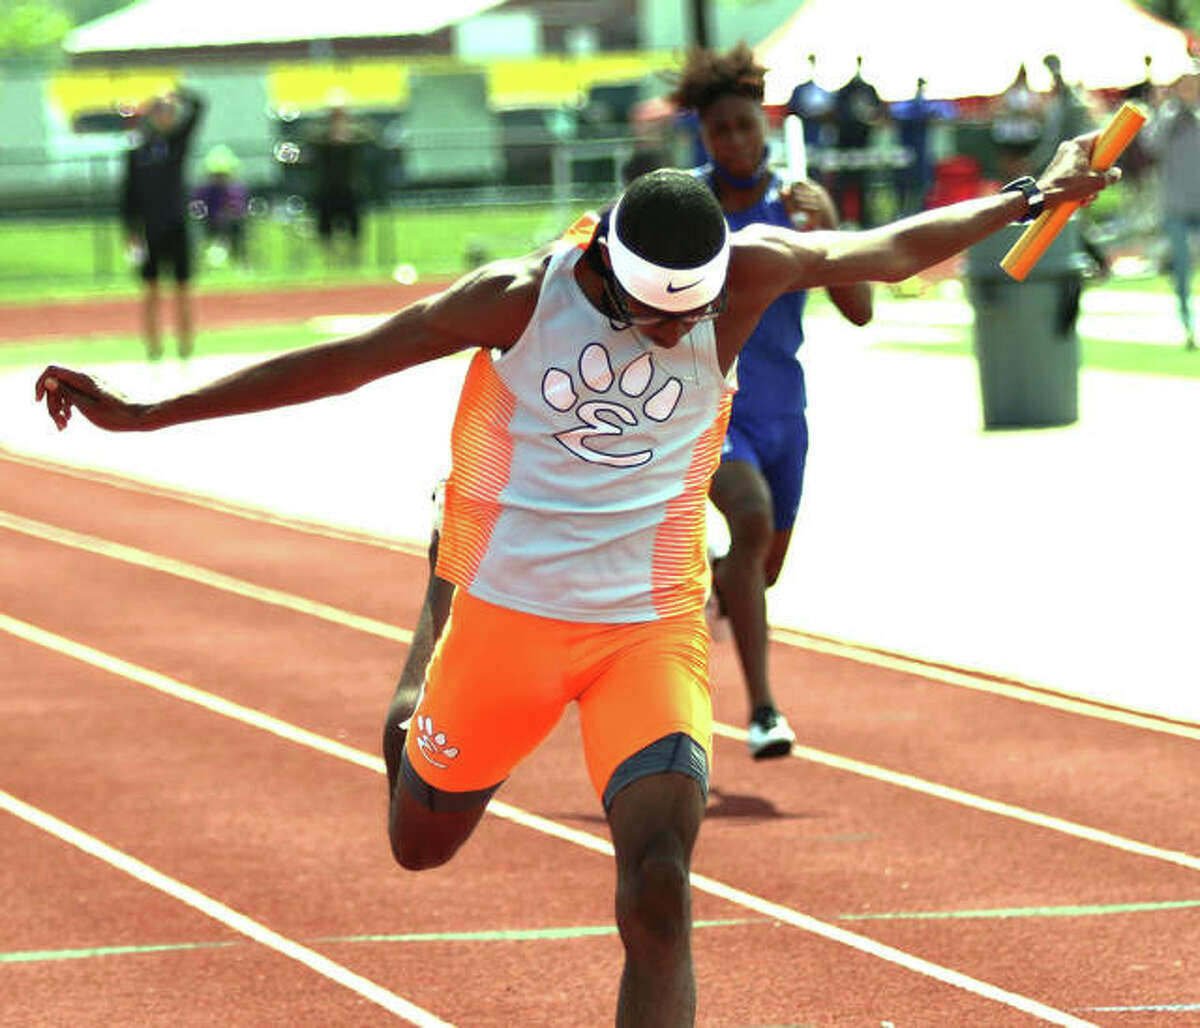 Edwardsville's Brandon Battle, shown finishing first in the 4x100 relay at the Belleville West Invite on May 1, won the 100, 200 and 400 along with the anchor of the winning 4x1 to lead the Tigers to the title of the SWC Meet on Wednesday at East St. Louis.